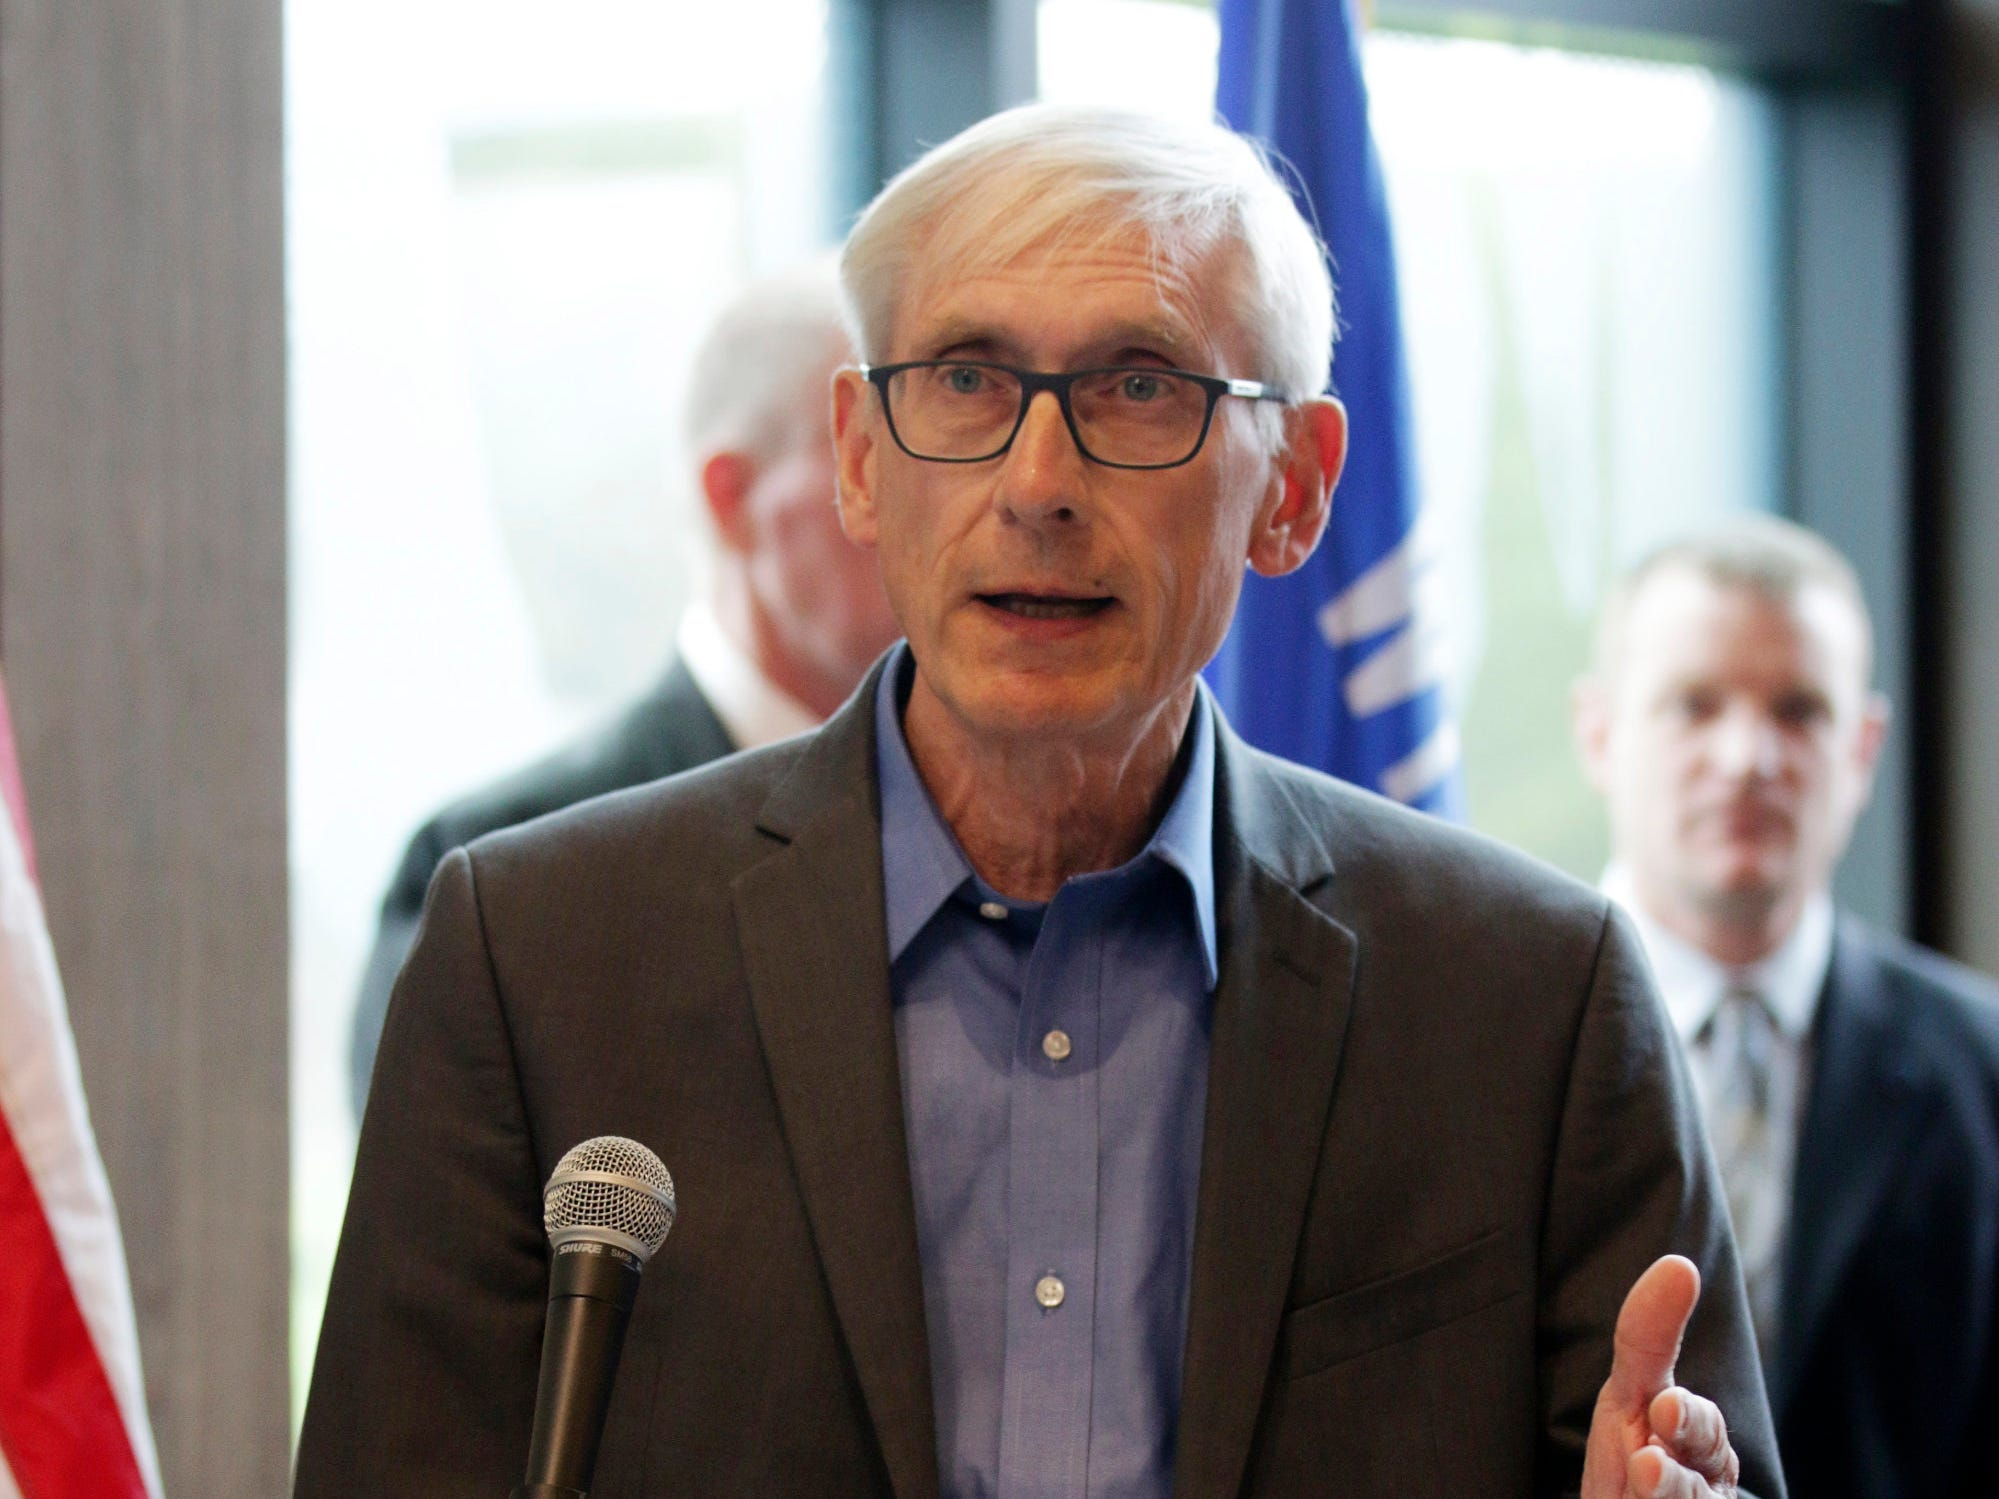 Gov. Tony Evers gestures while speaking at the state Highway 23 four-lane expansion groundbreaking, Wednesday, May 8, 2019, at the Wade House in Greenbush, Wis.  Officials said that the construction would start May 13, 2019.